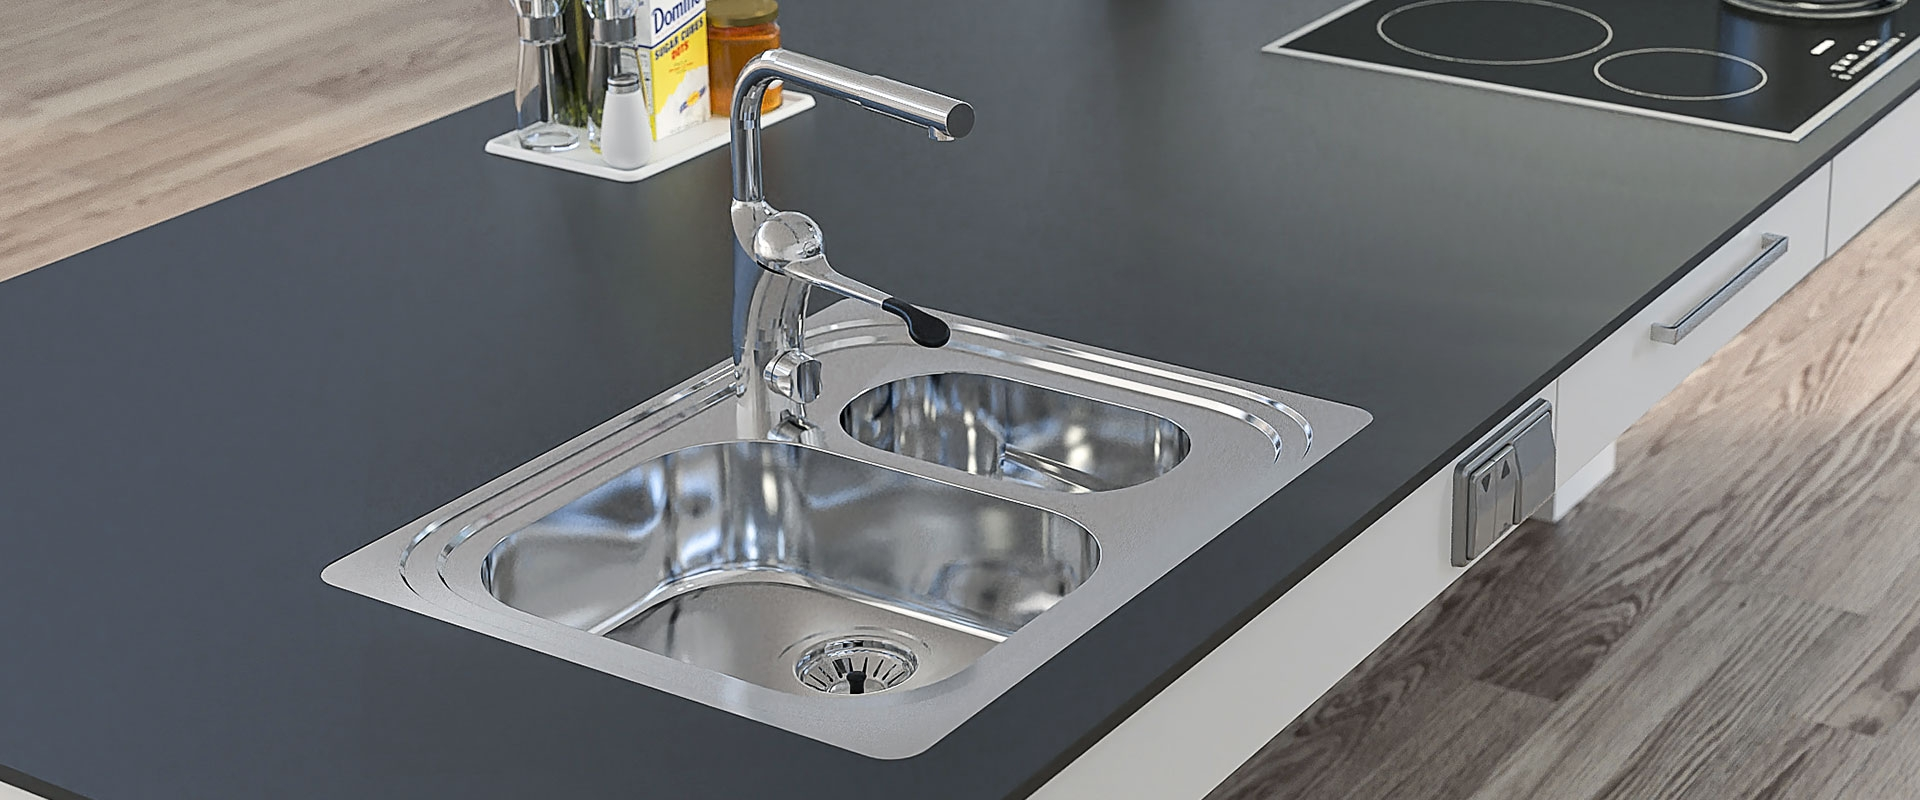 Inset Kitchen Sink ES20 - 61.6 cm